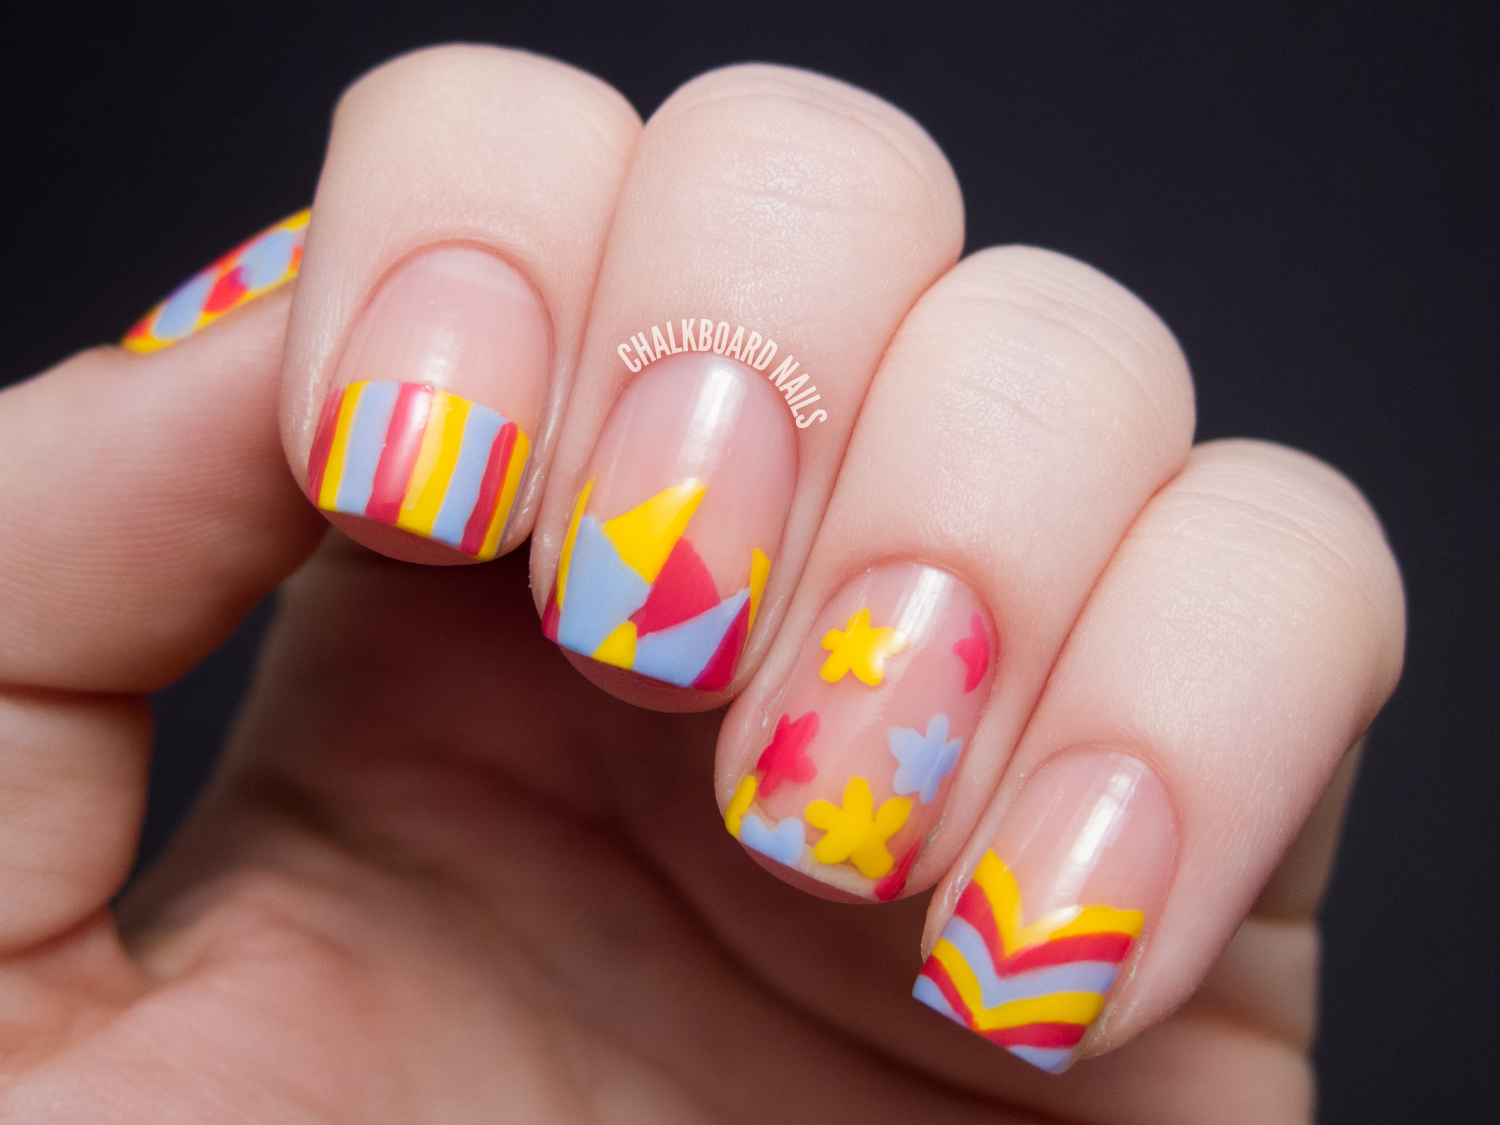 Sweet Spring Mix Over Nude   Chalkboard Nails   Nail Art Blog